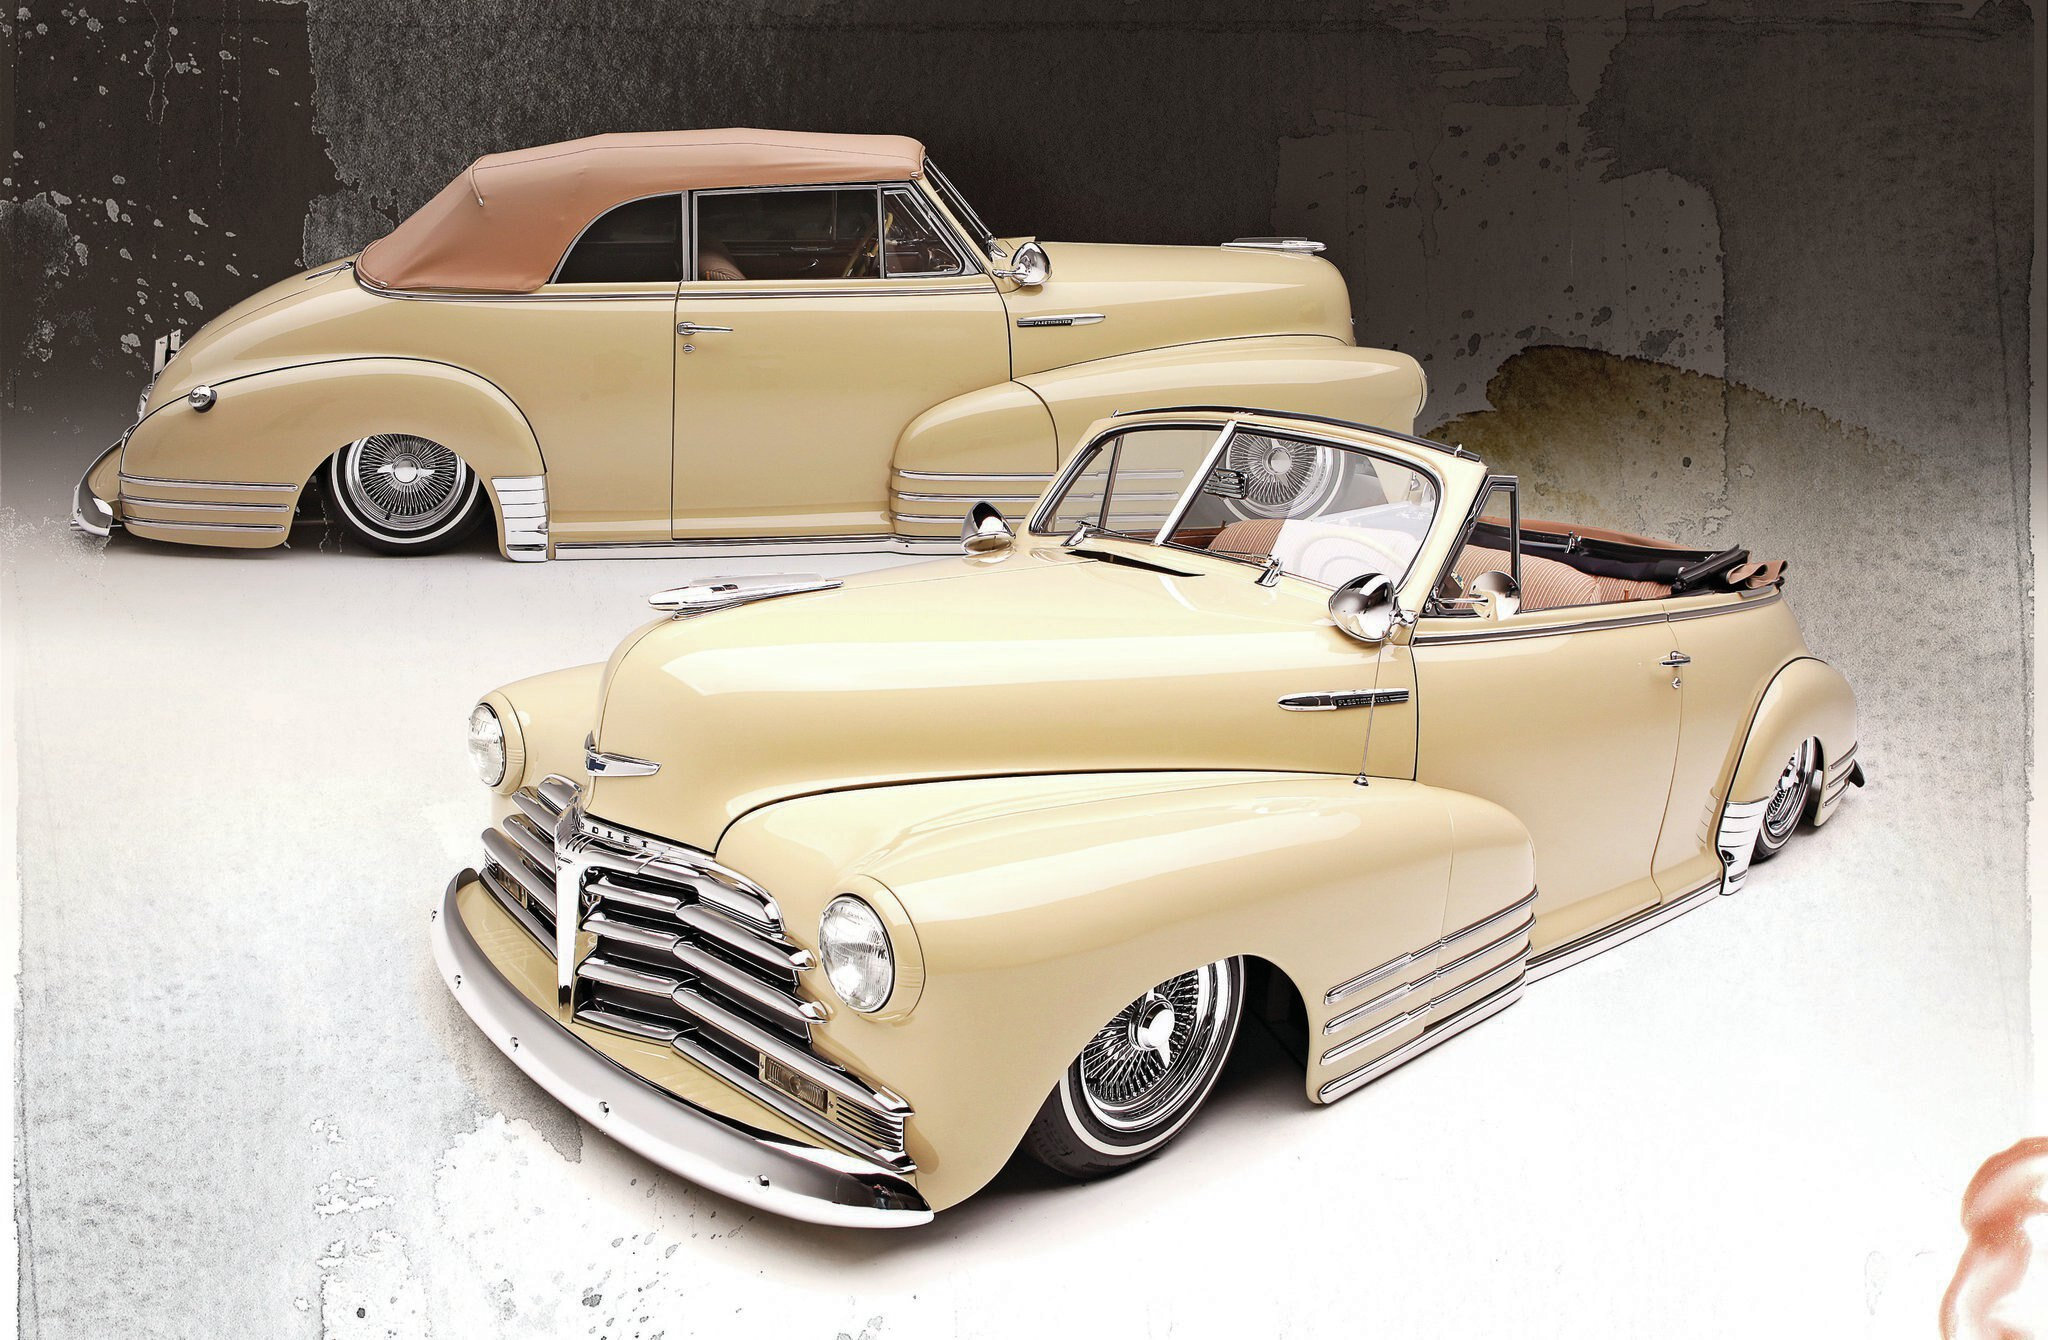 1948 chevrolet fleetmaster - door-to-door search